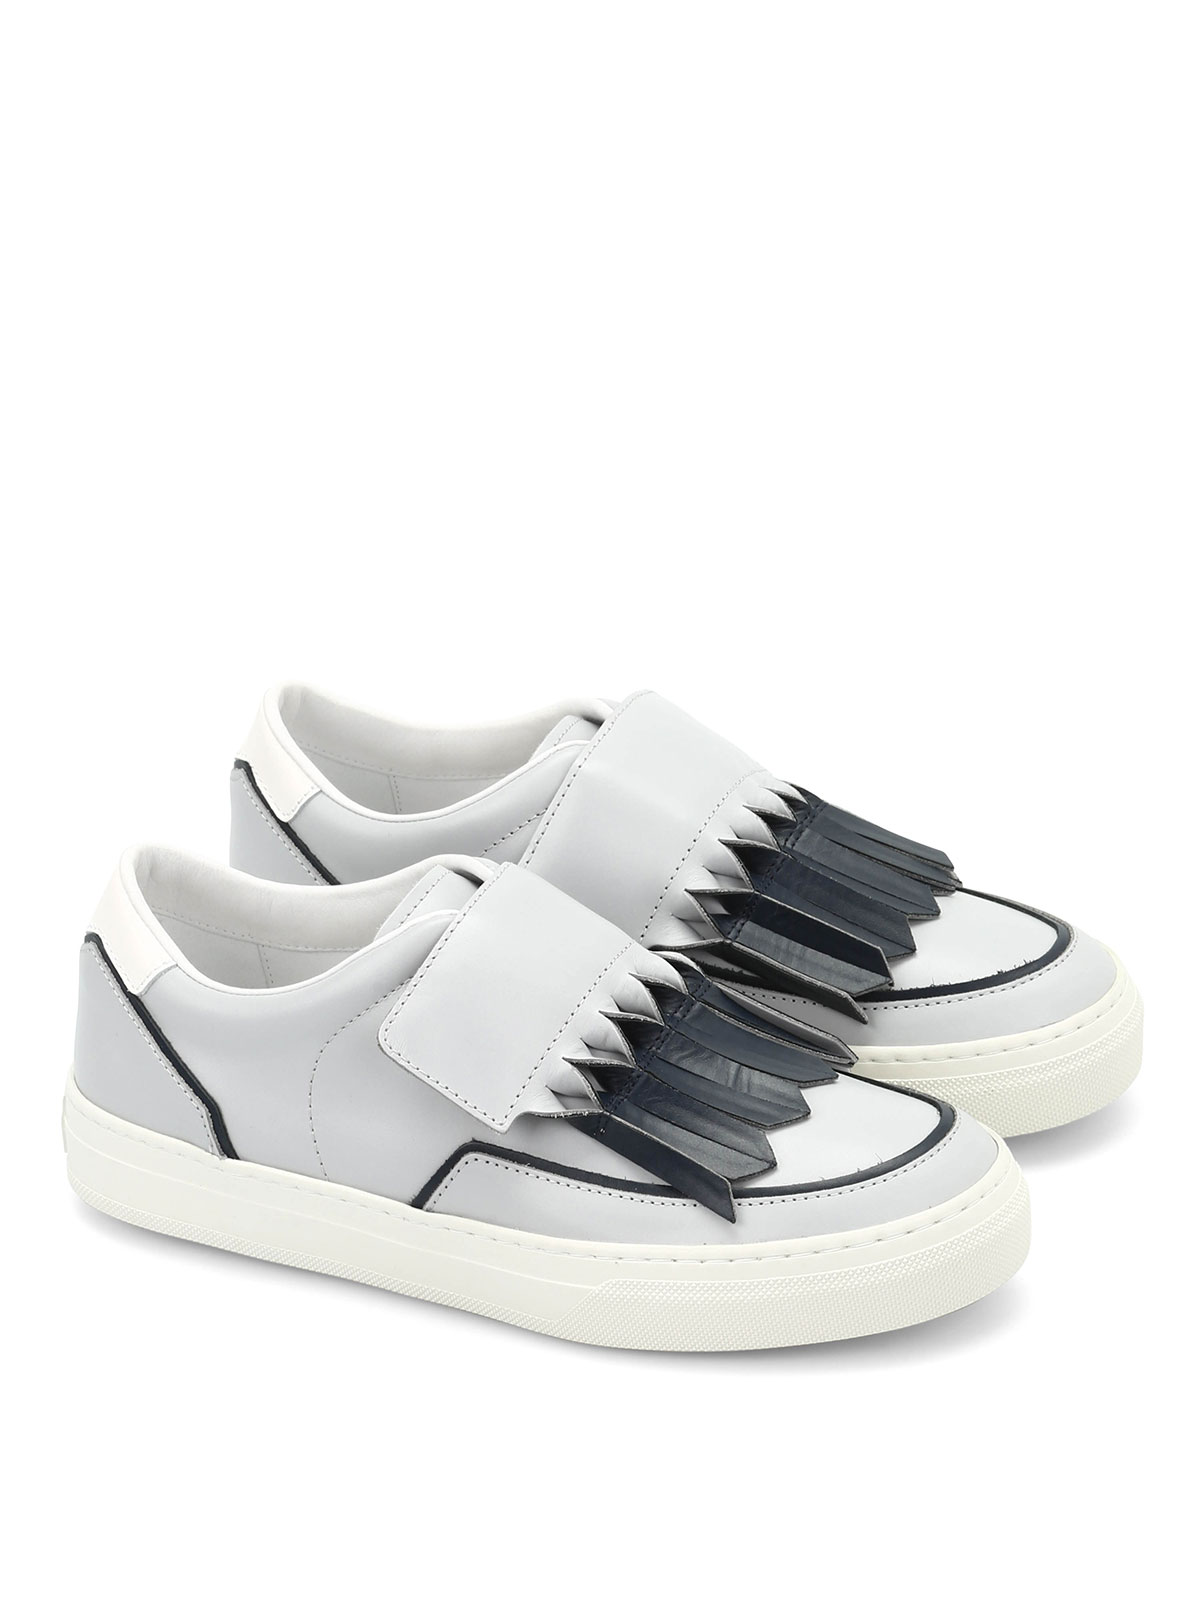 Frangia Origami Sneakers By TodS Trainers IKRIX